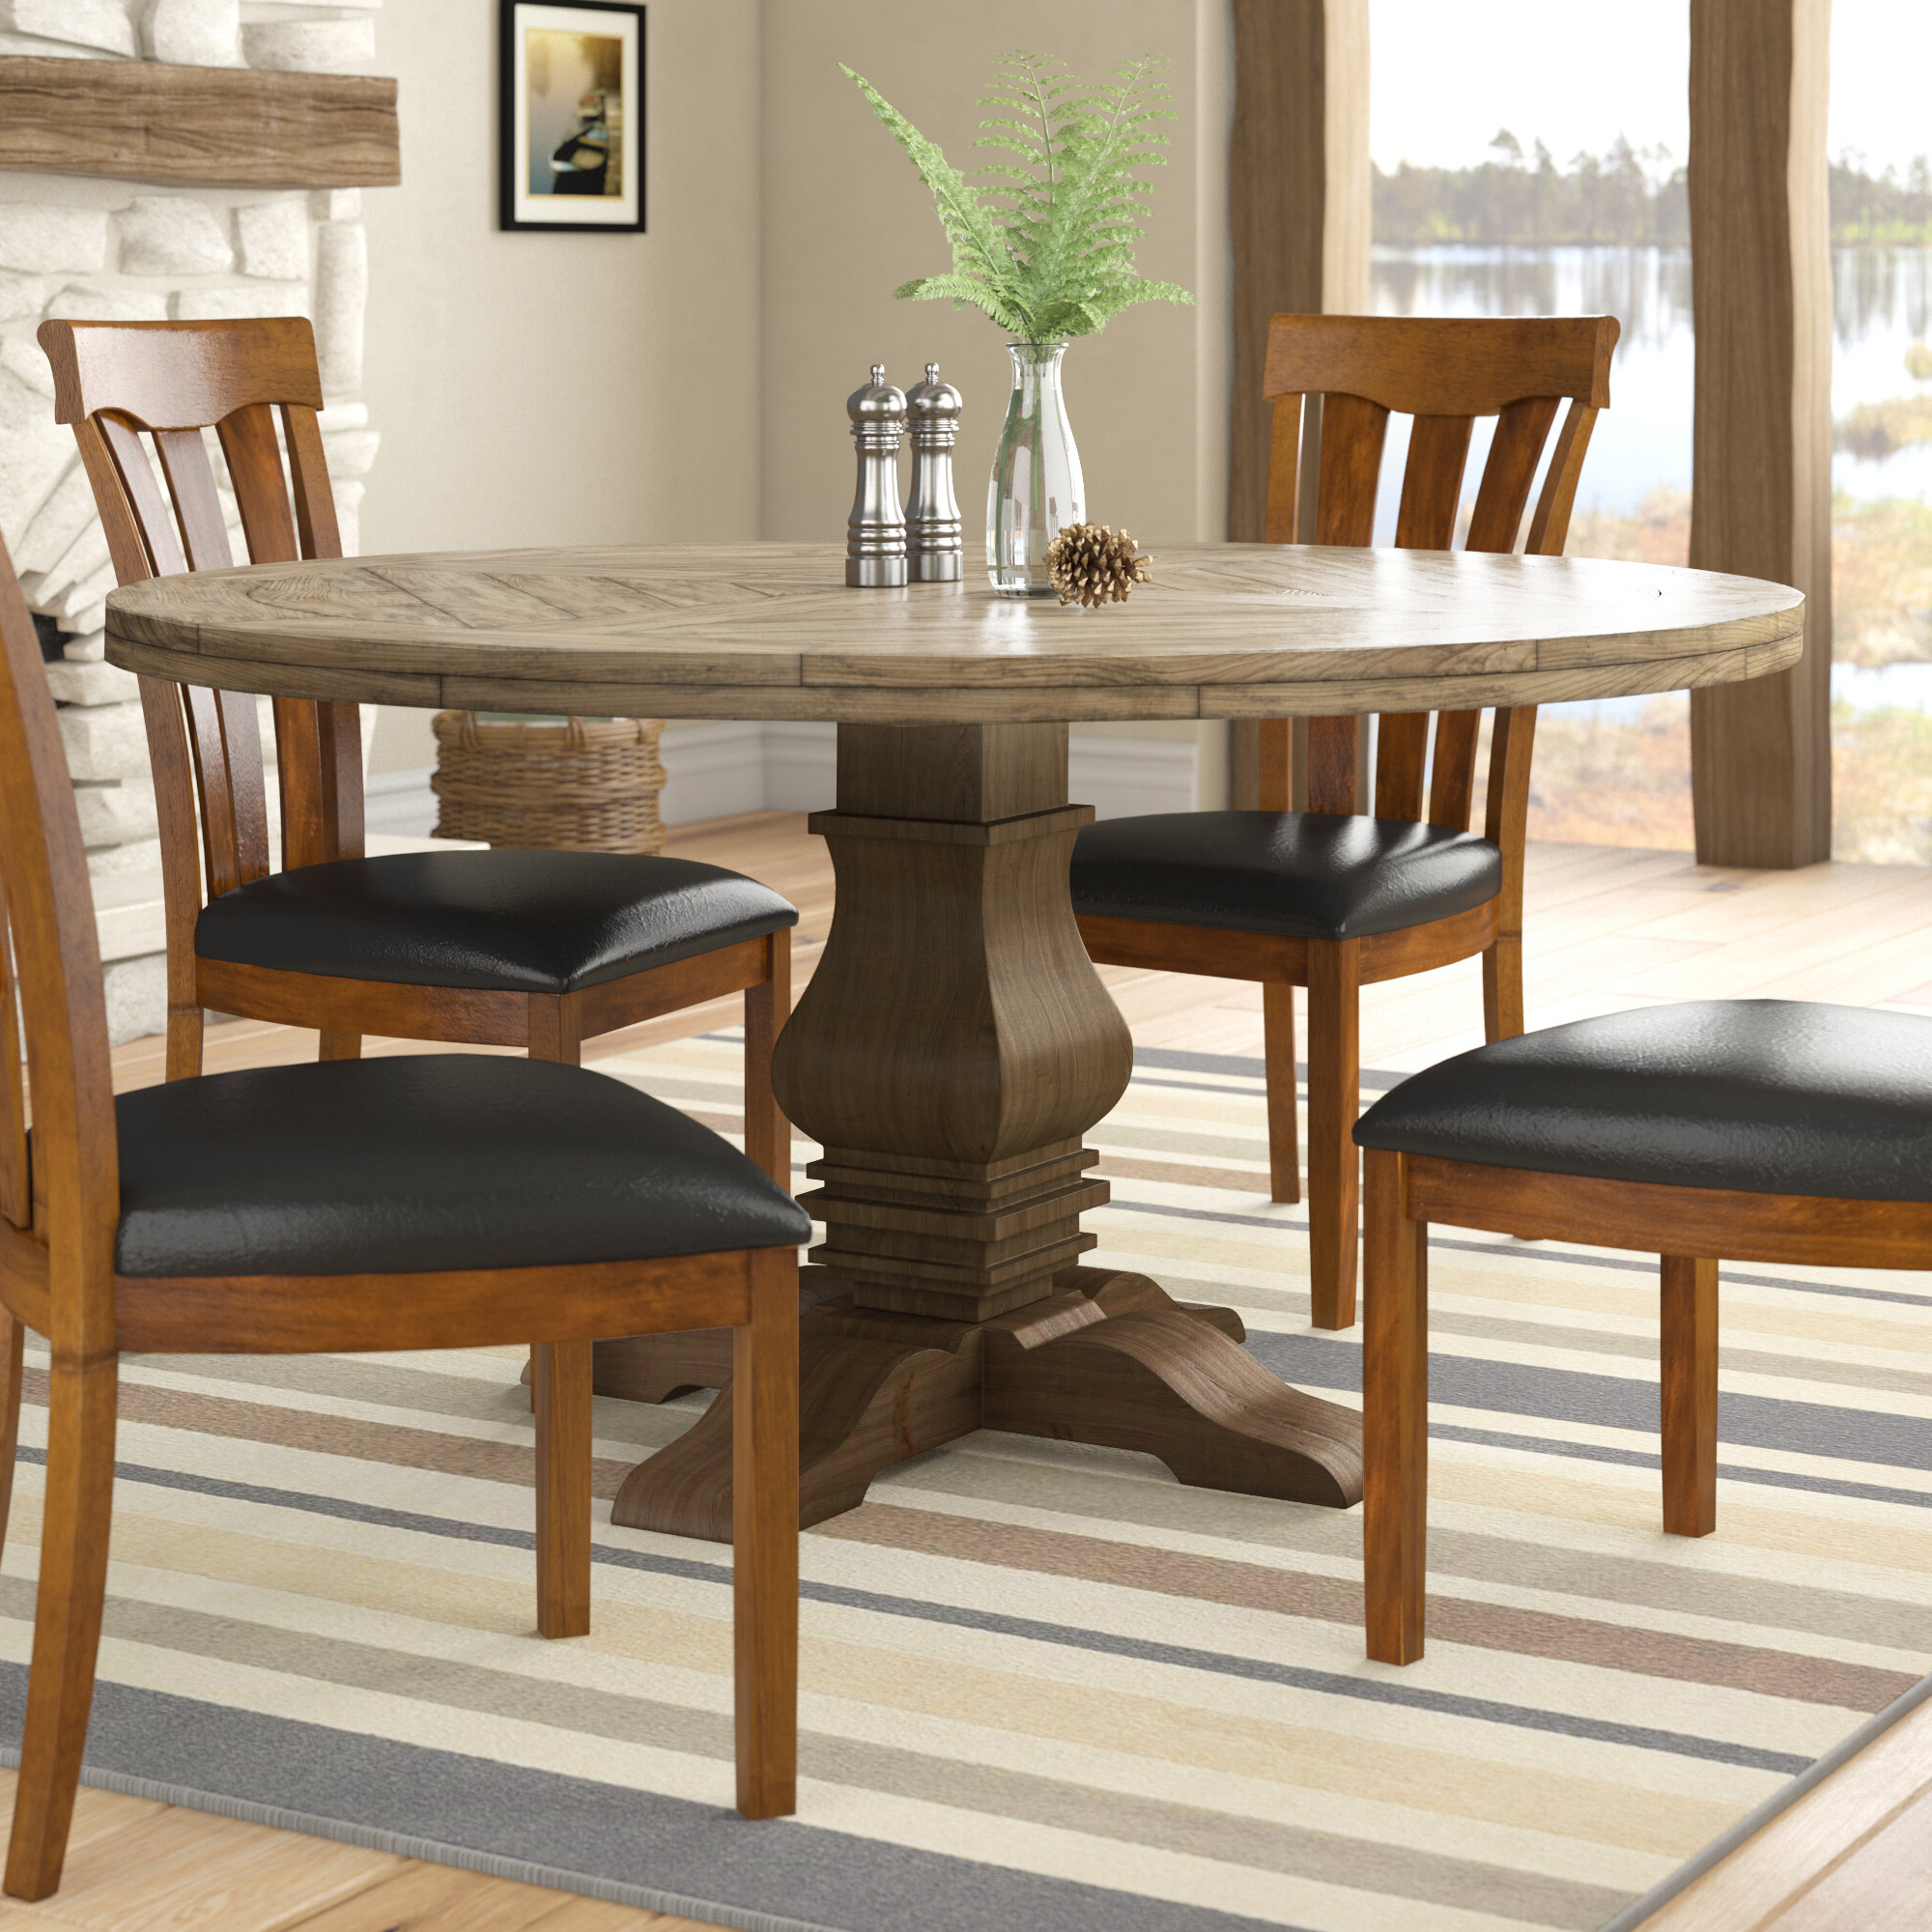 Fashionable Magaw Solid Wood Dining Table Intended For Distressed Grey Finish Wood Classic Design Dining Tables (Gallery 30 of 30)